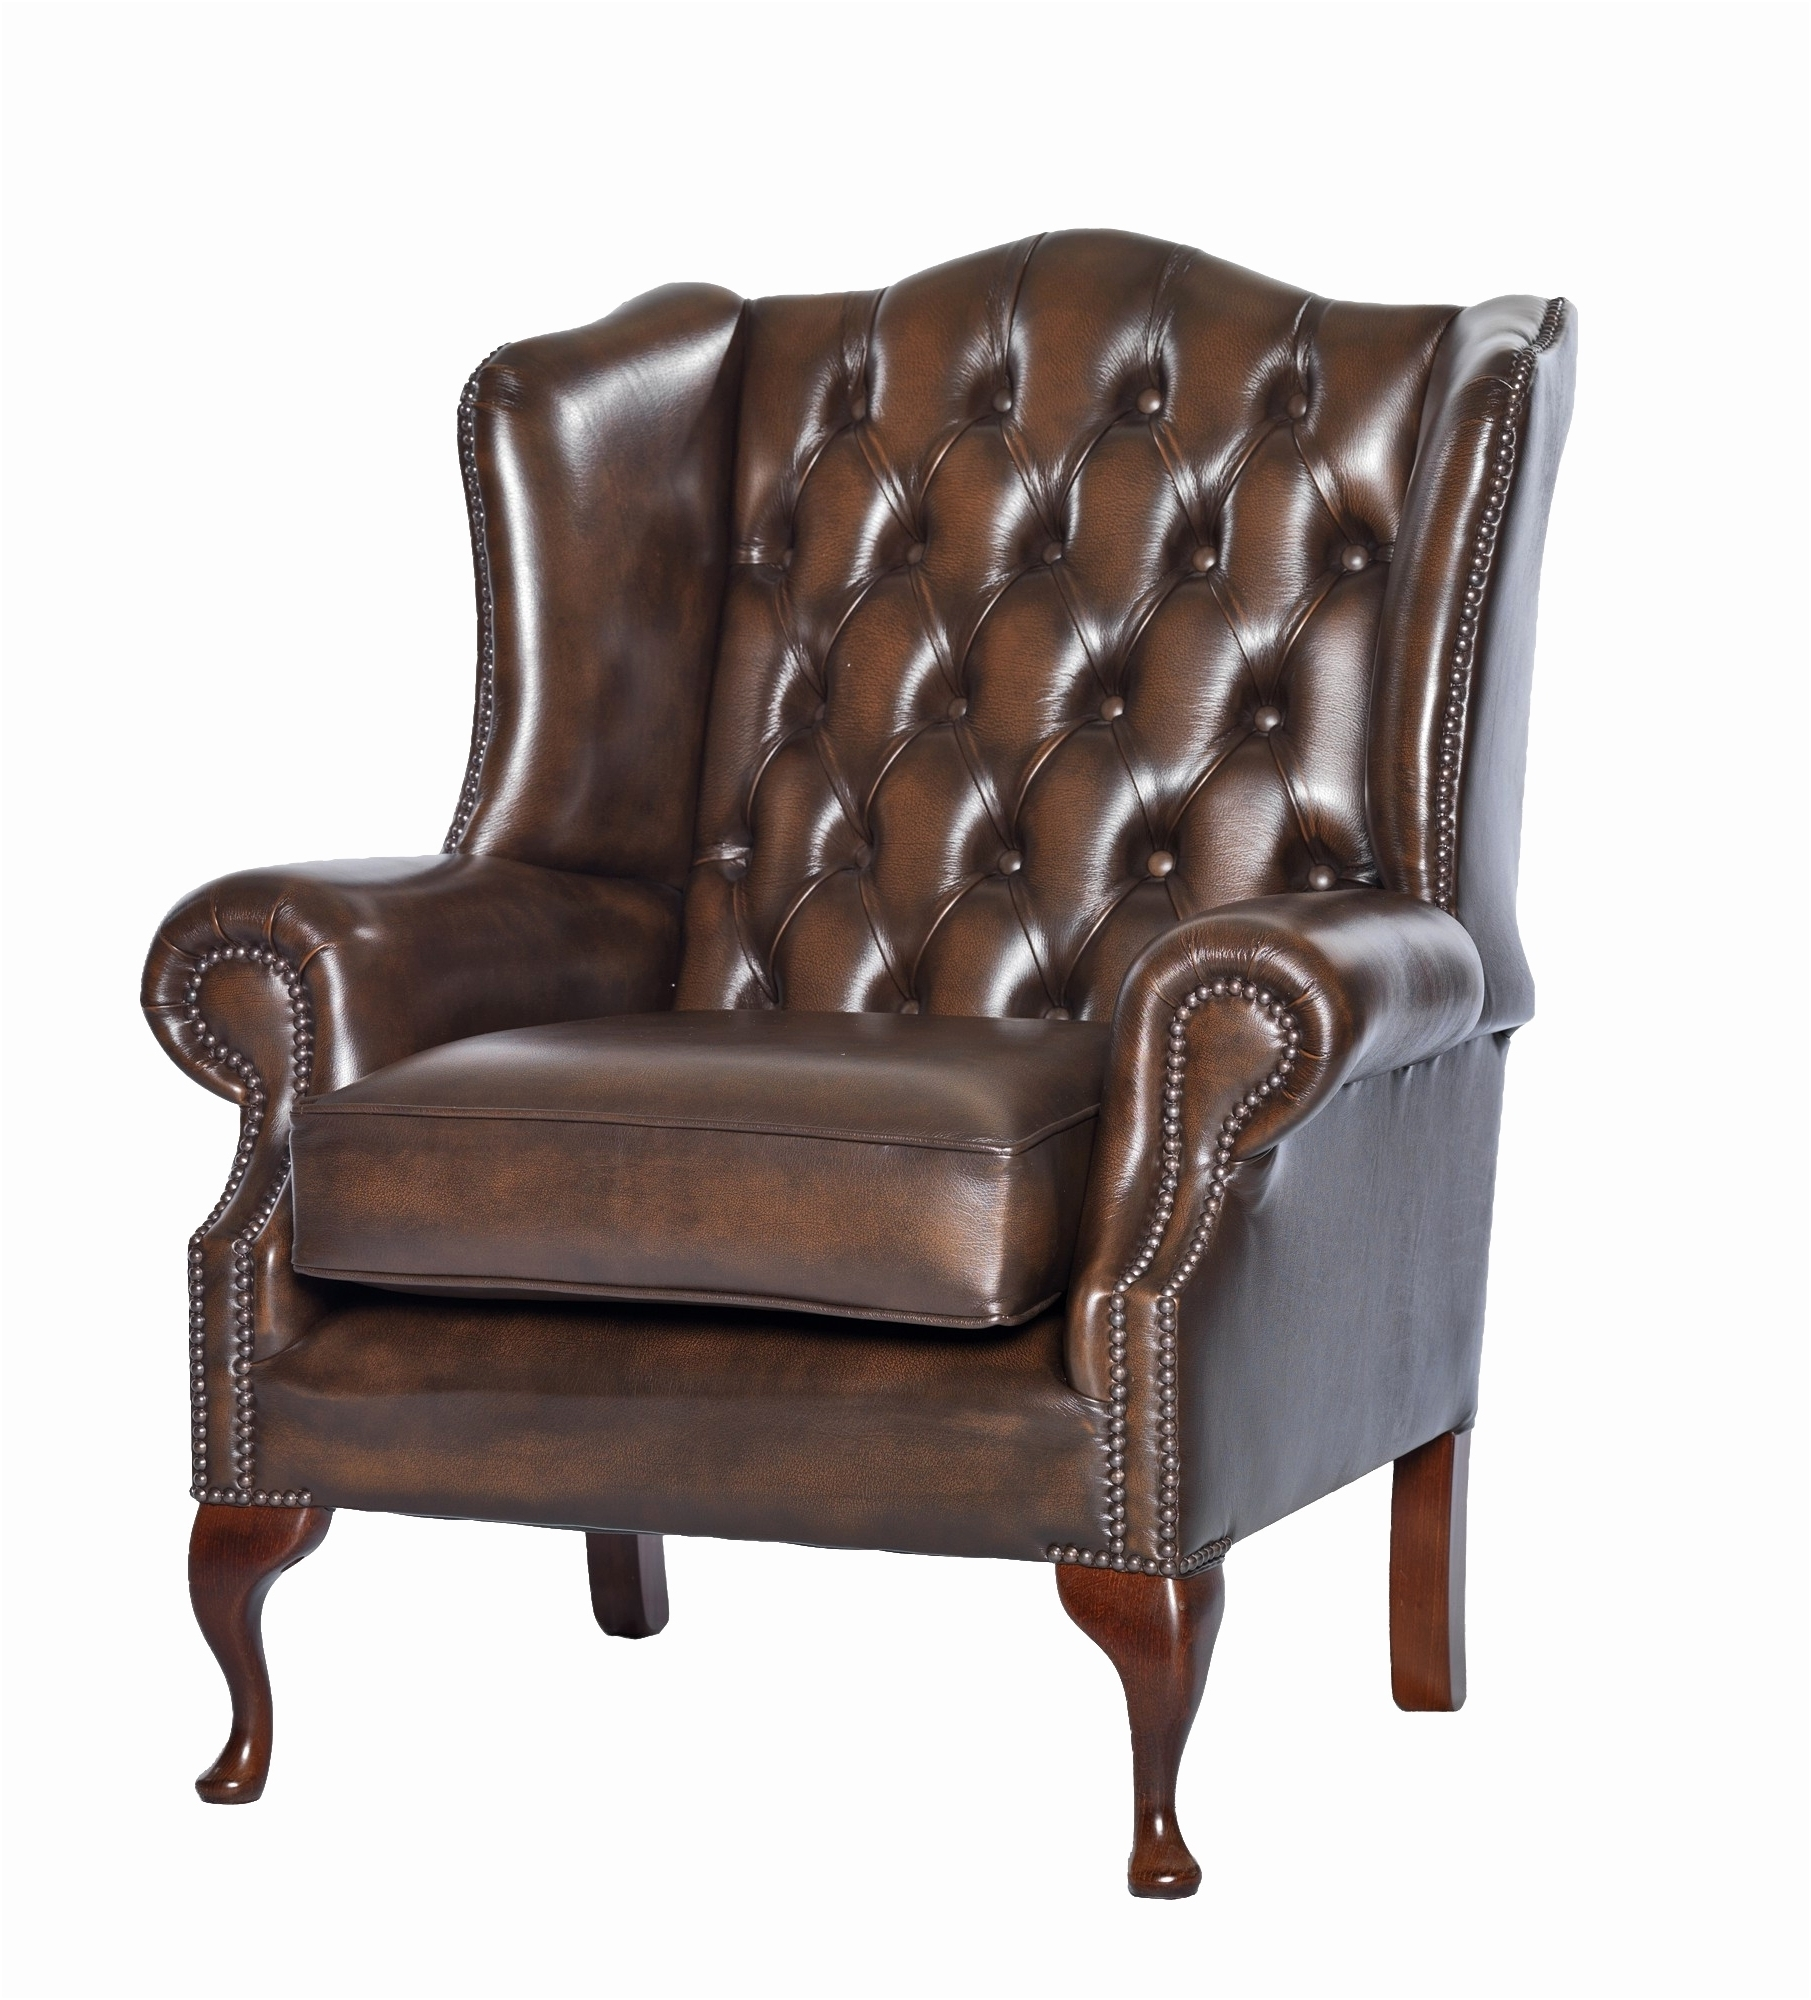 Elegant Used Chesterfield Sofa Luxury – Intuisiblog Intended For Trendy Chesterfield Sofas And Chairs (View 4 of 15)